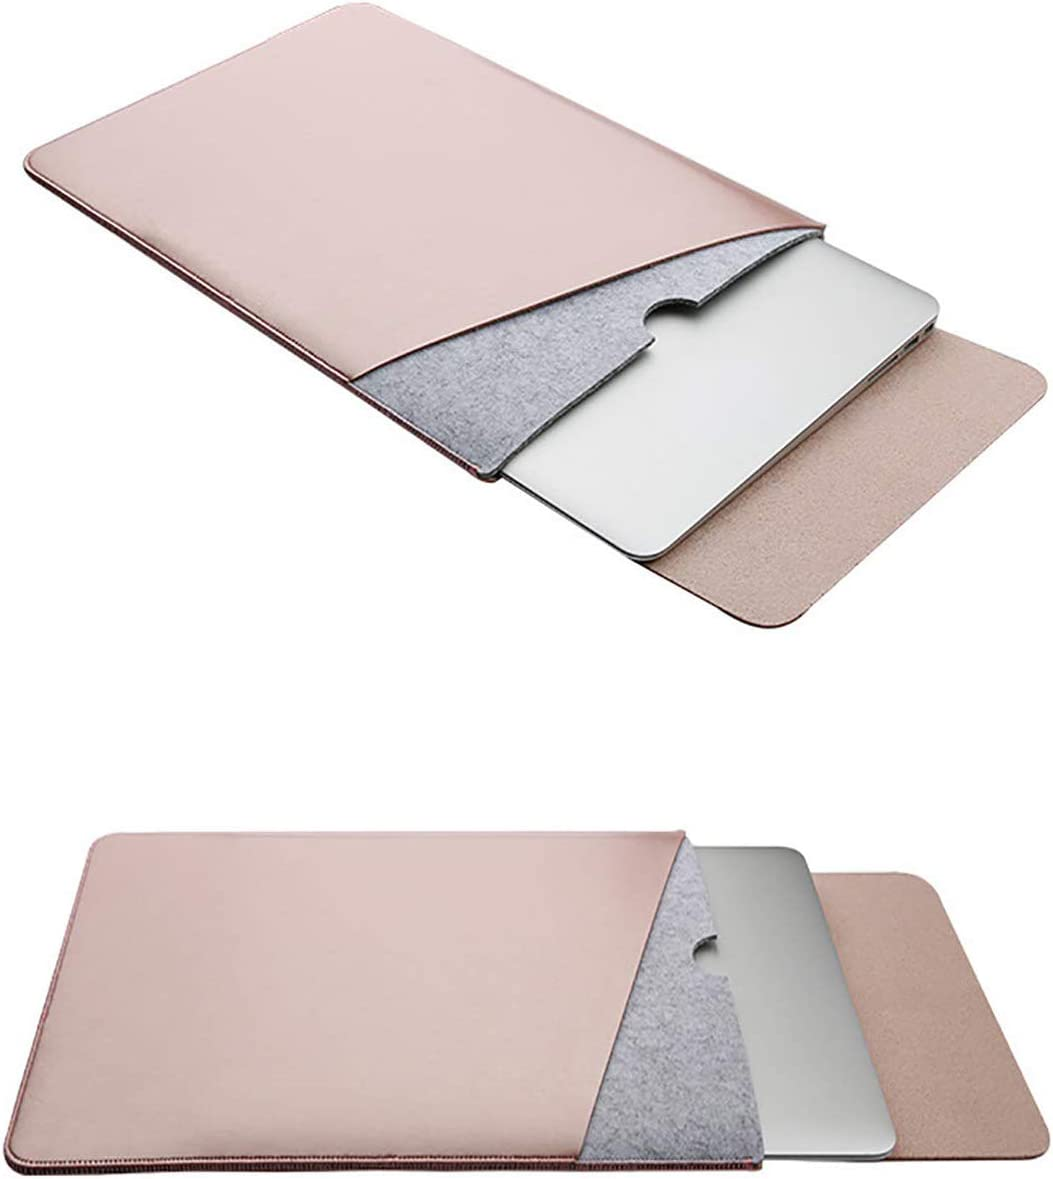 Emoly PU Laptop Sleeve Case Cover for MacBook Pro and MacBook Air 13.3 Inches, Fits Model A1466/A1502/A1425 (Rose Gold)